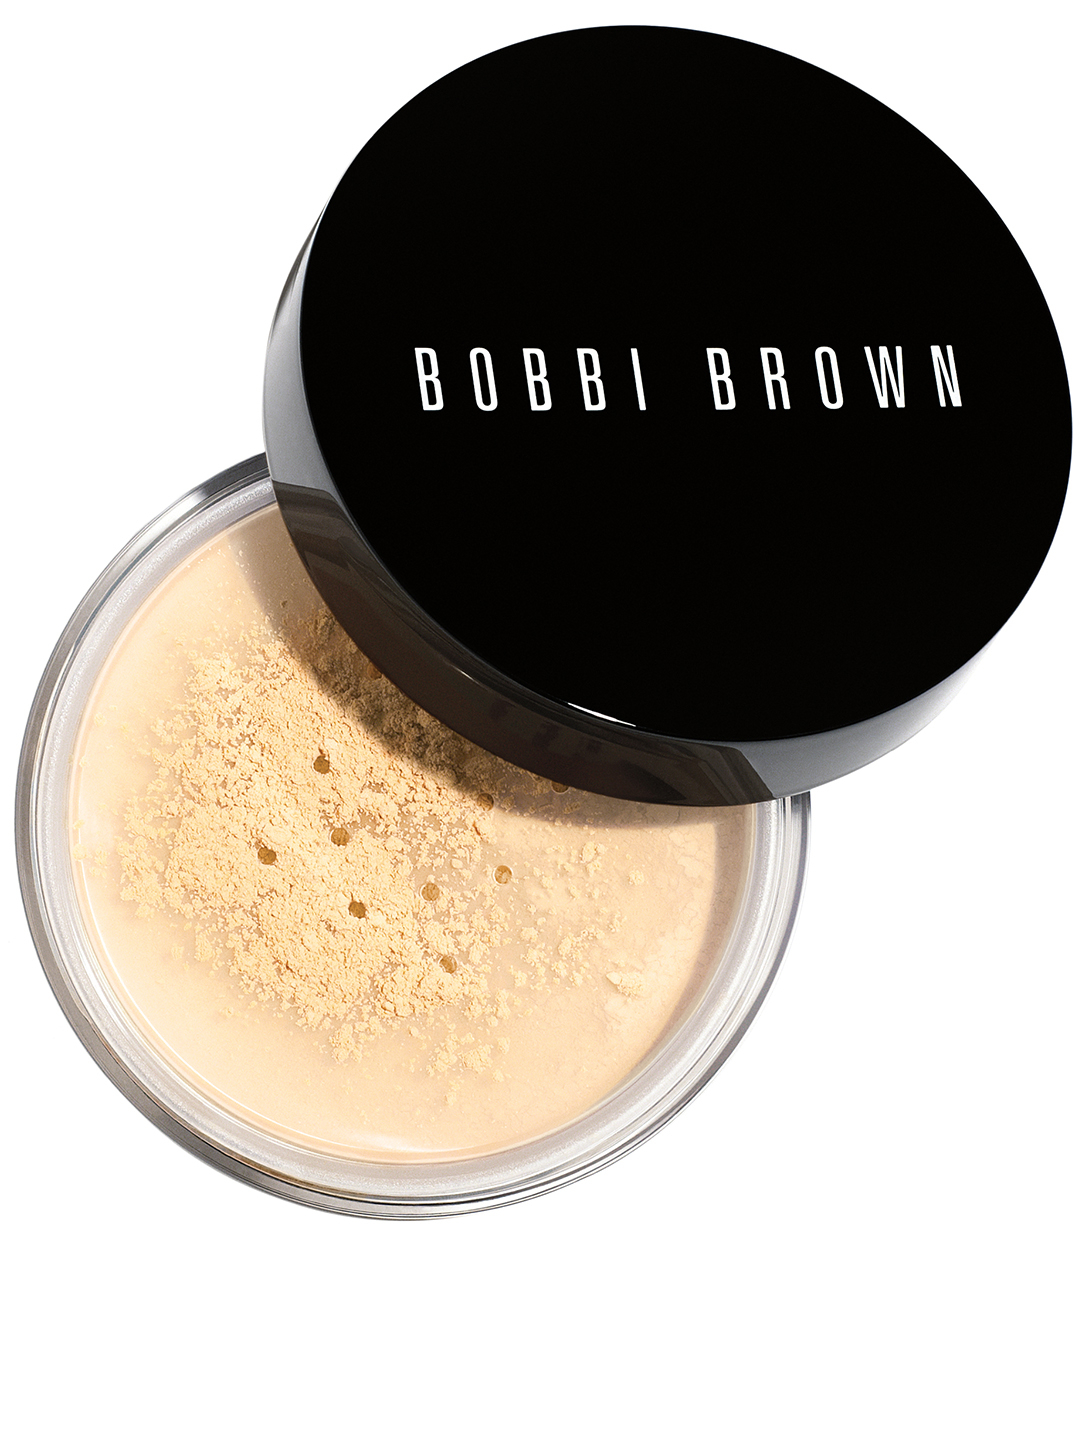 BOBBI BROWN Sheer Finish Loose Powder Beauty Neutral